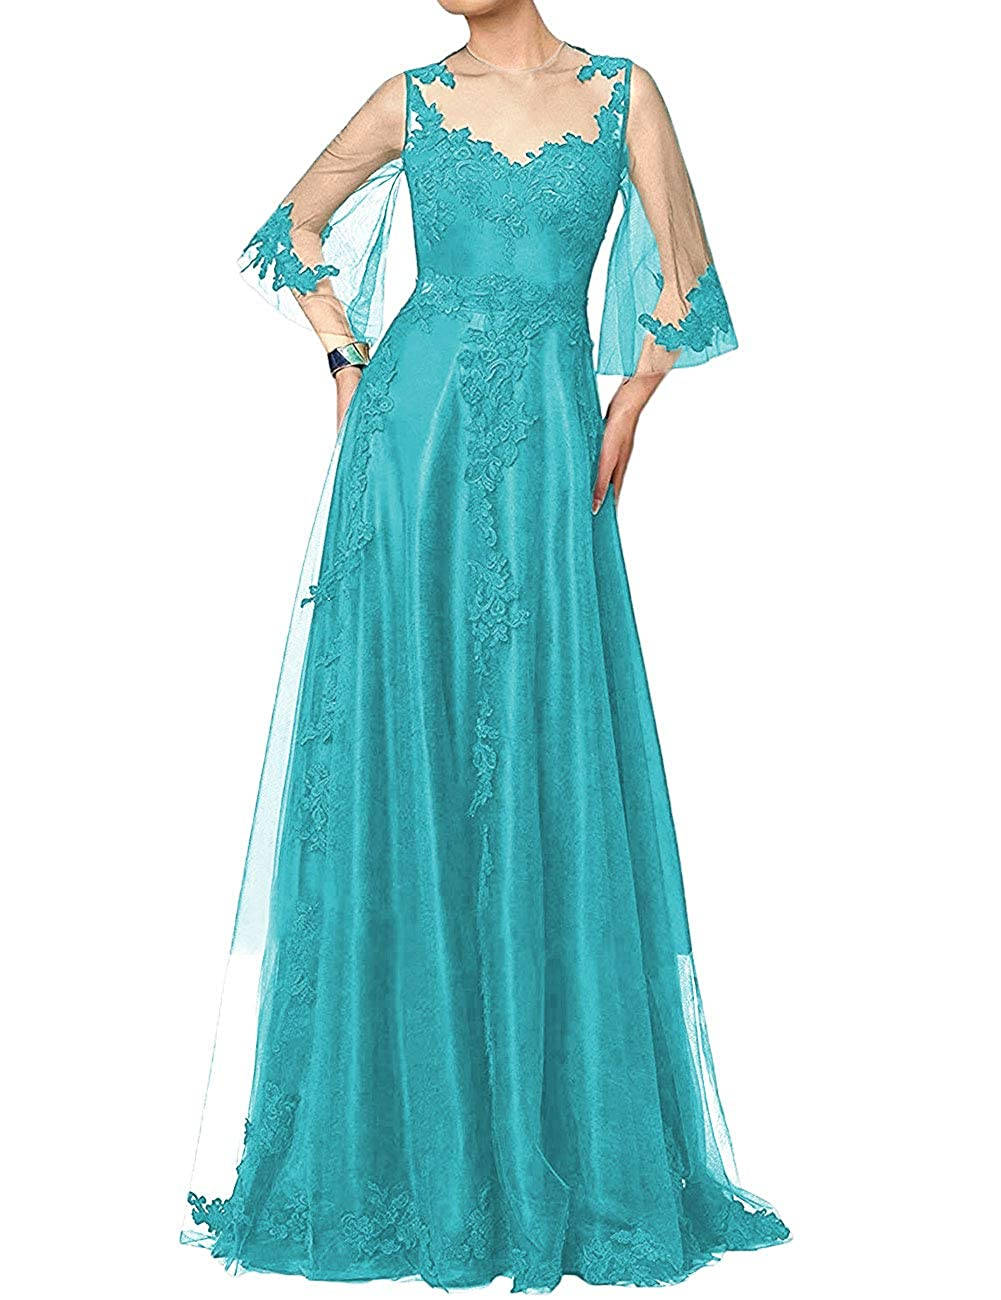 Teal bluee H.S.D Mother of The Bride Dress Aline Mother Dresses Long Prom Evening Gowns Sleeve